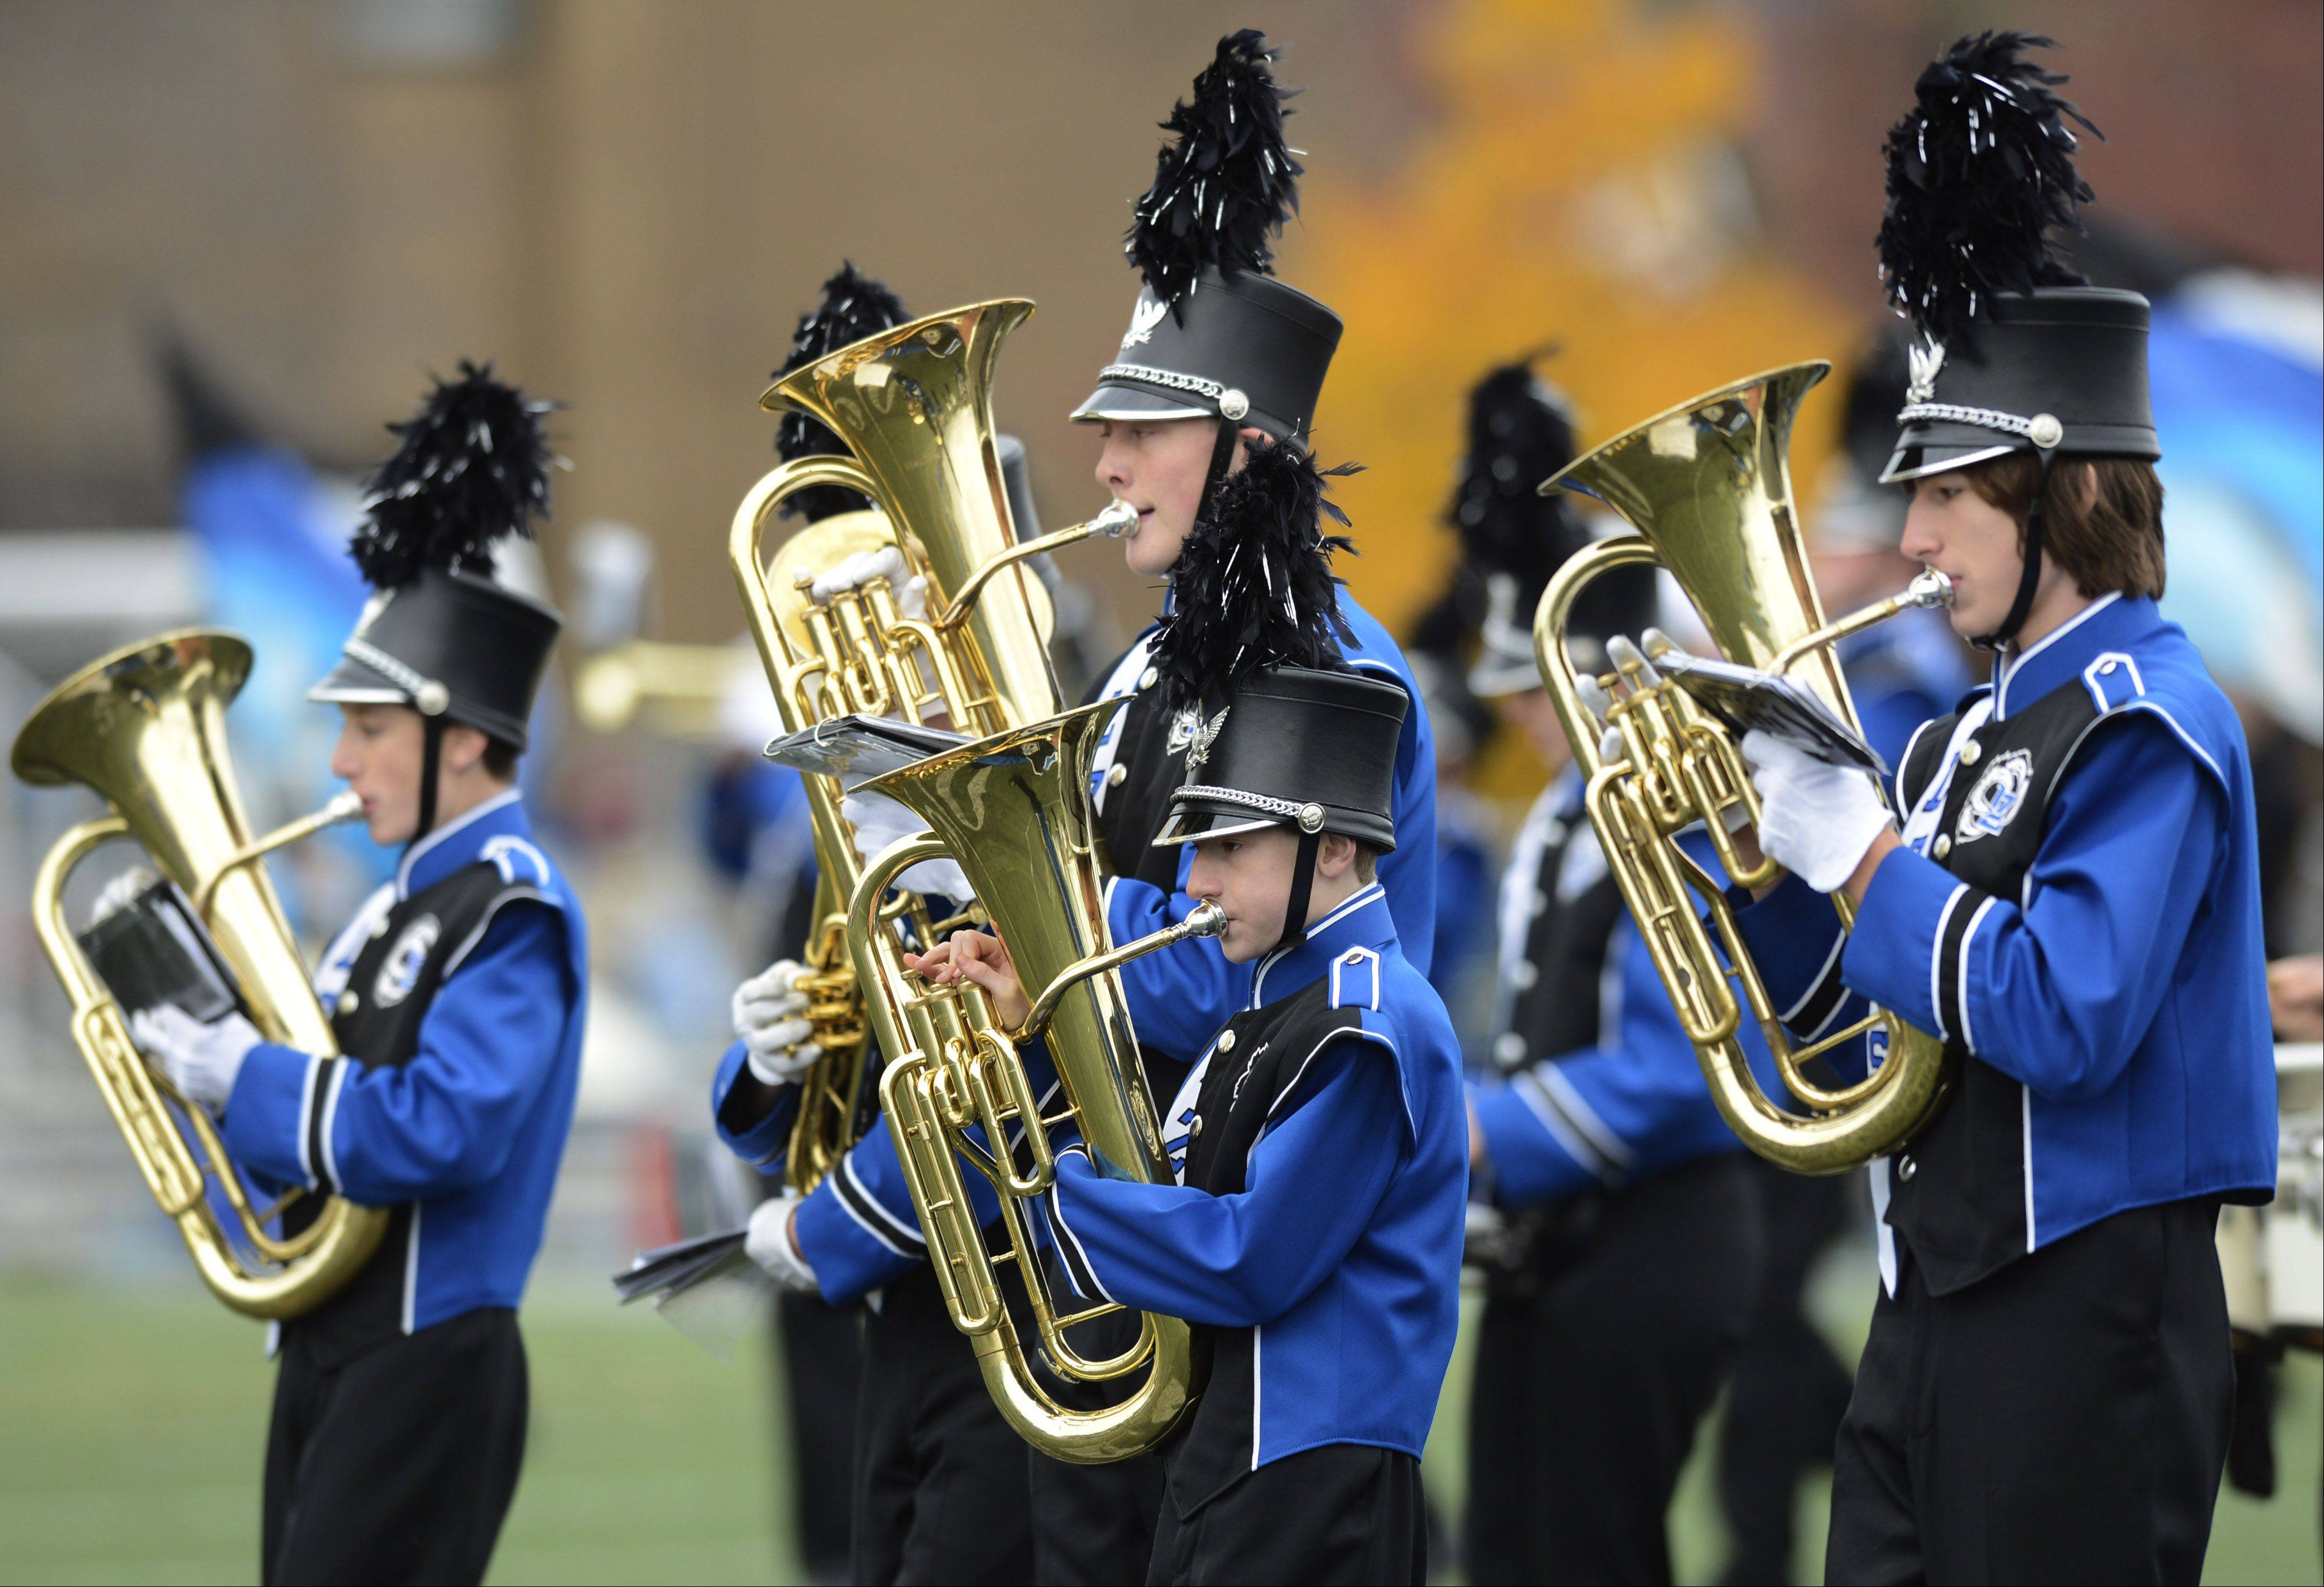 Lake Zurich High School marching band members, shown here playing at a November football game, are expected to all be back Tuesday.